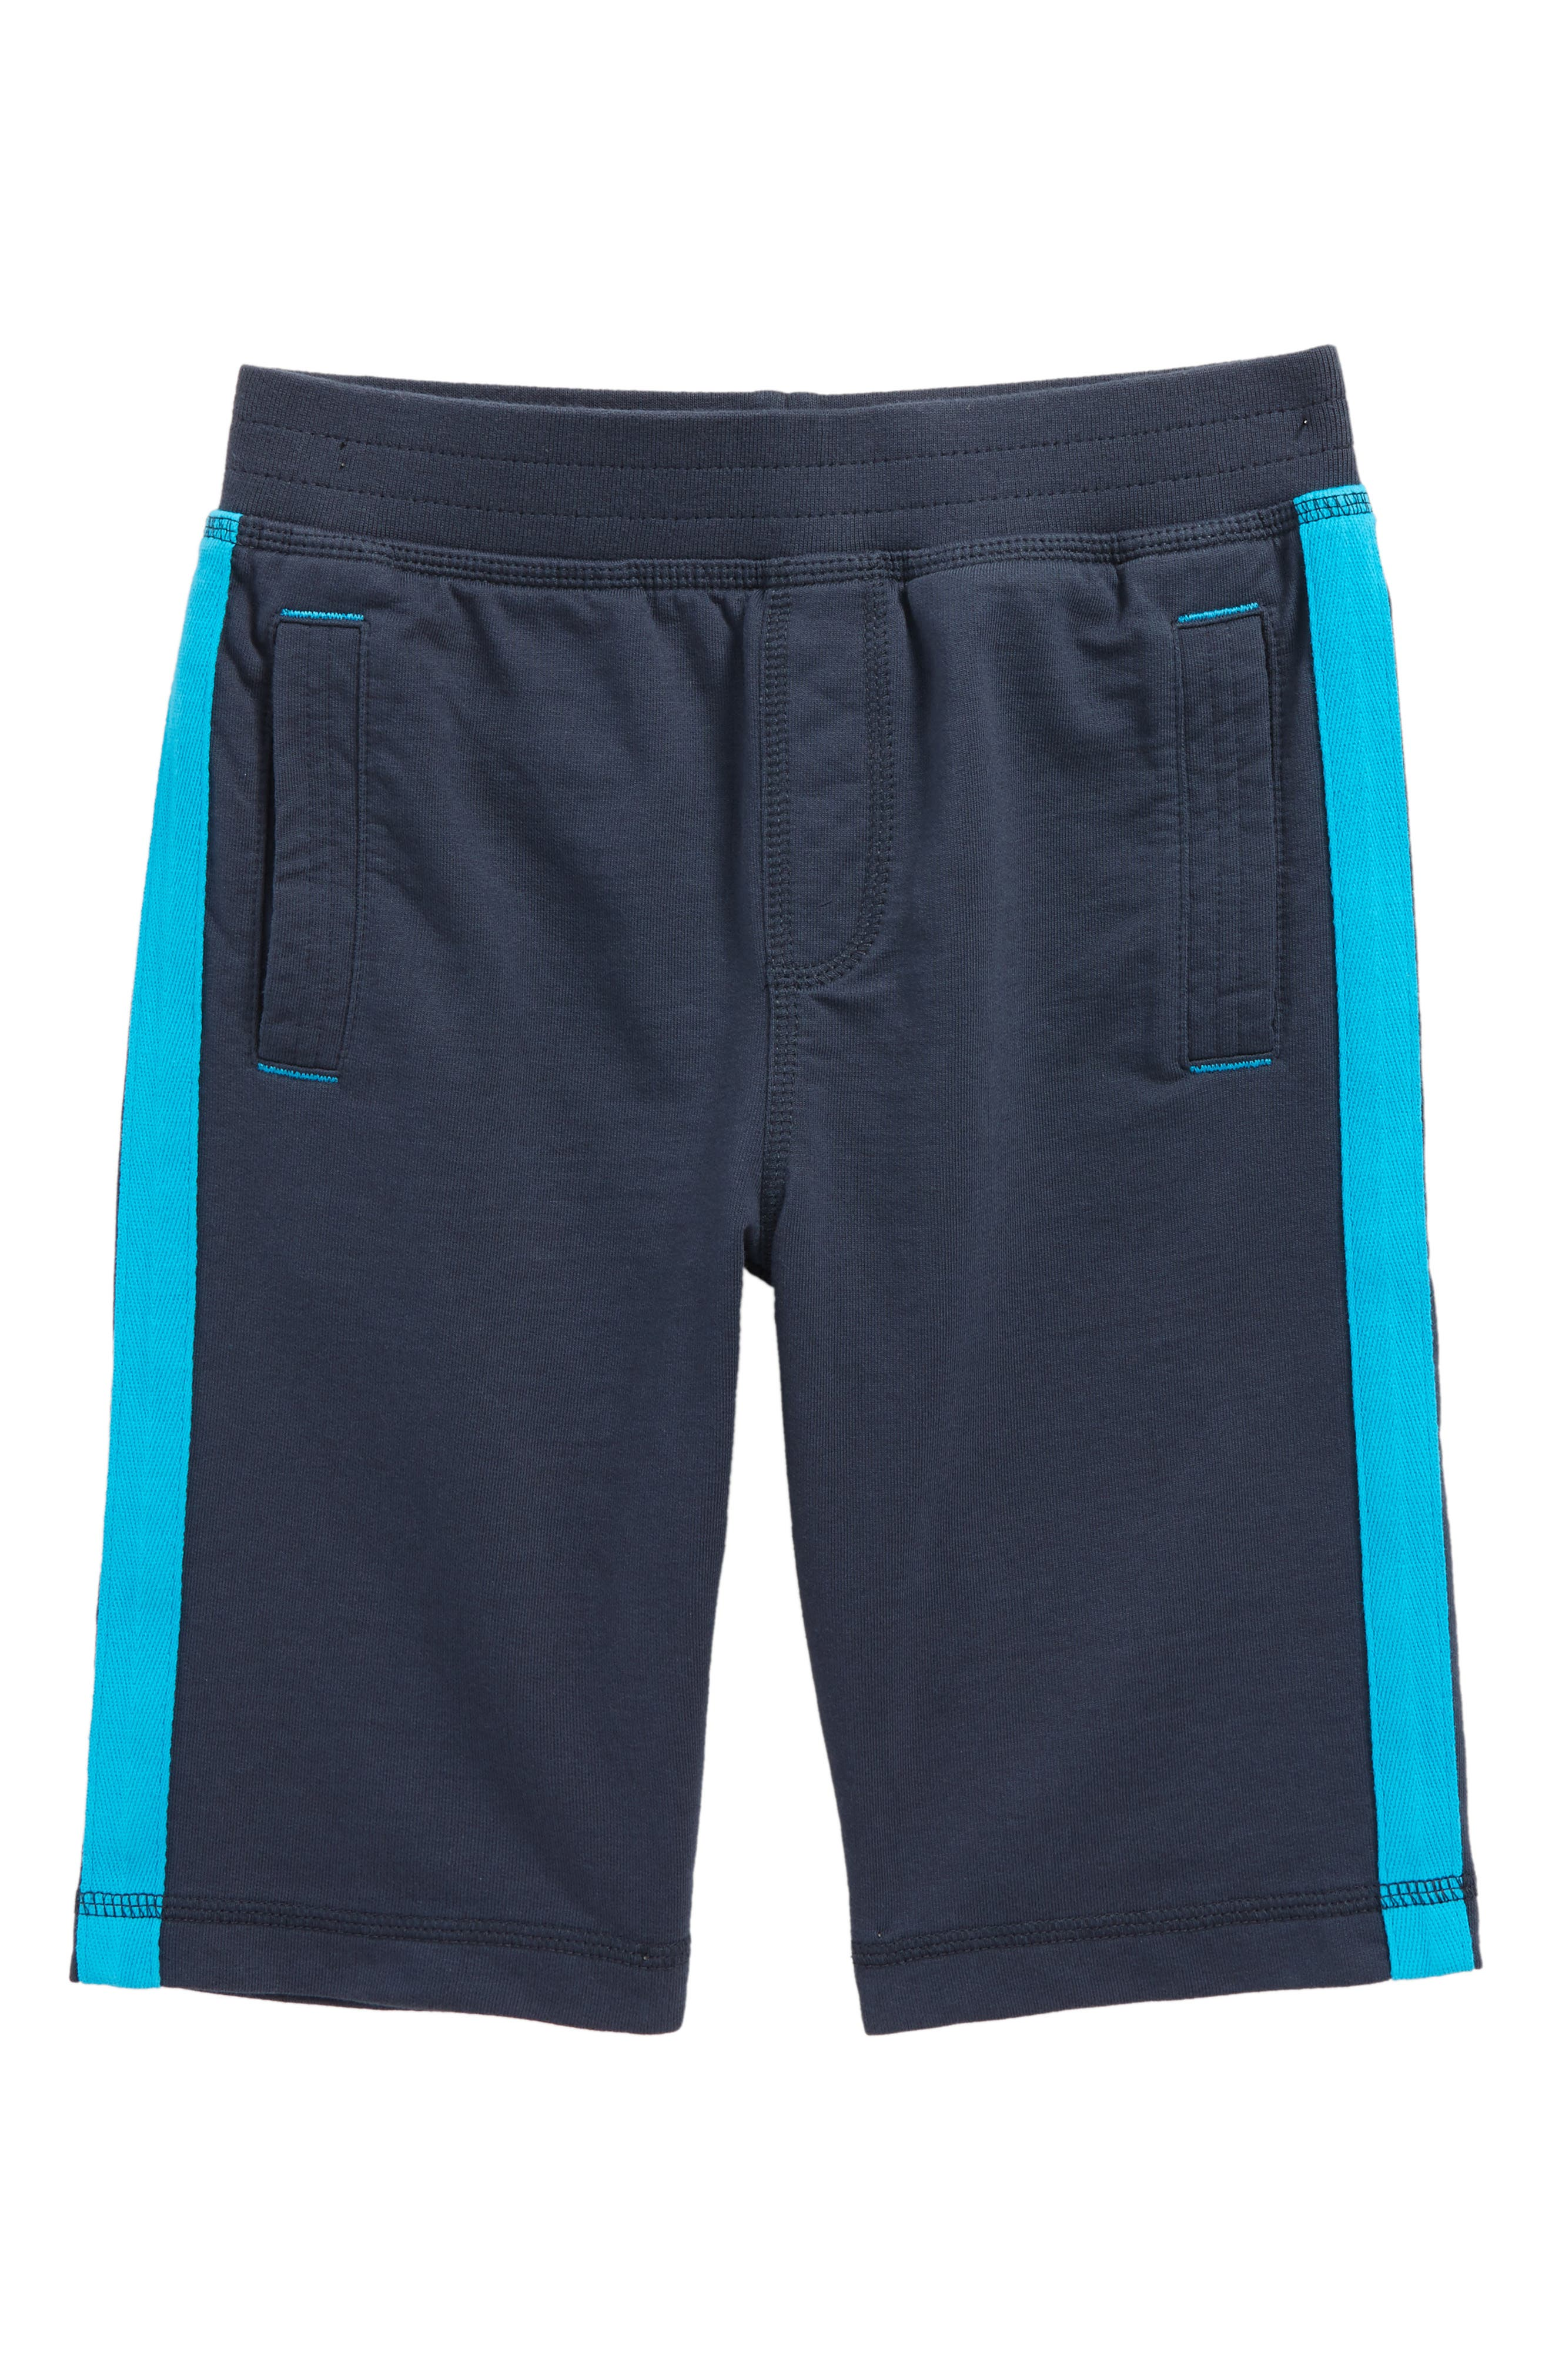 Alternate Image 1 Selected - Tea Collection Side Stripe Shorts (Toddler Boys & Little Boys)